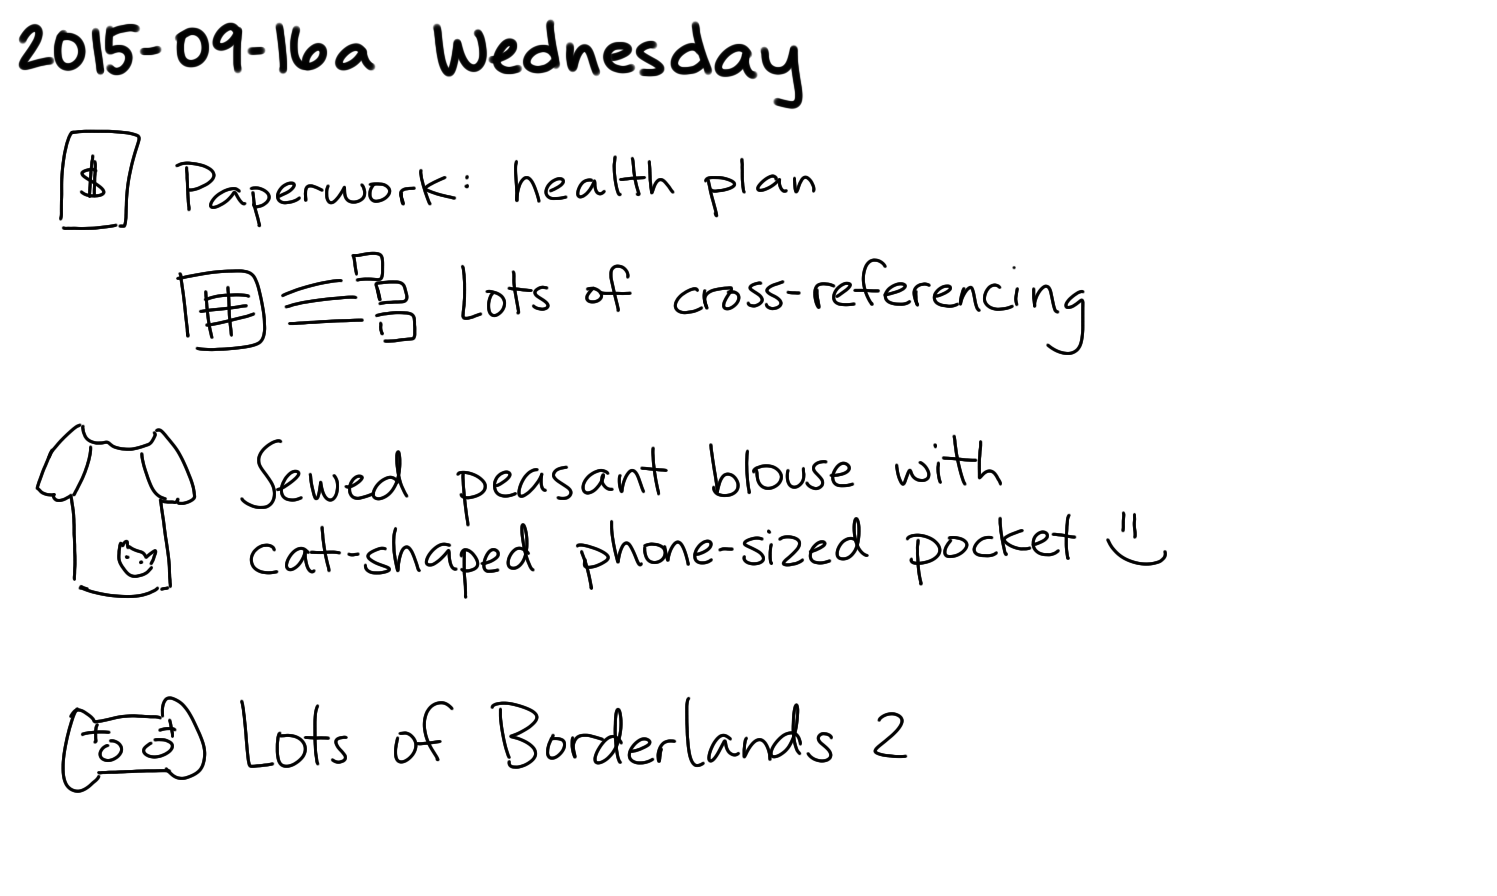 2015-09-16a Wednesday -- index card #journal.png